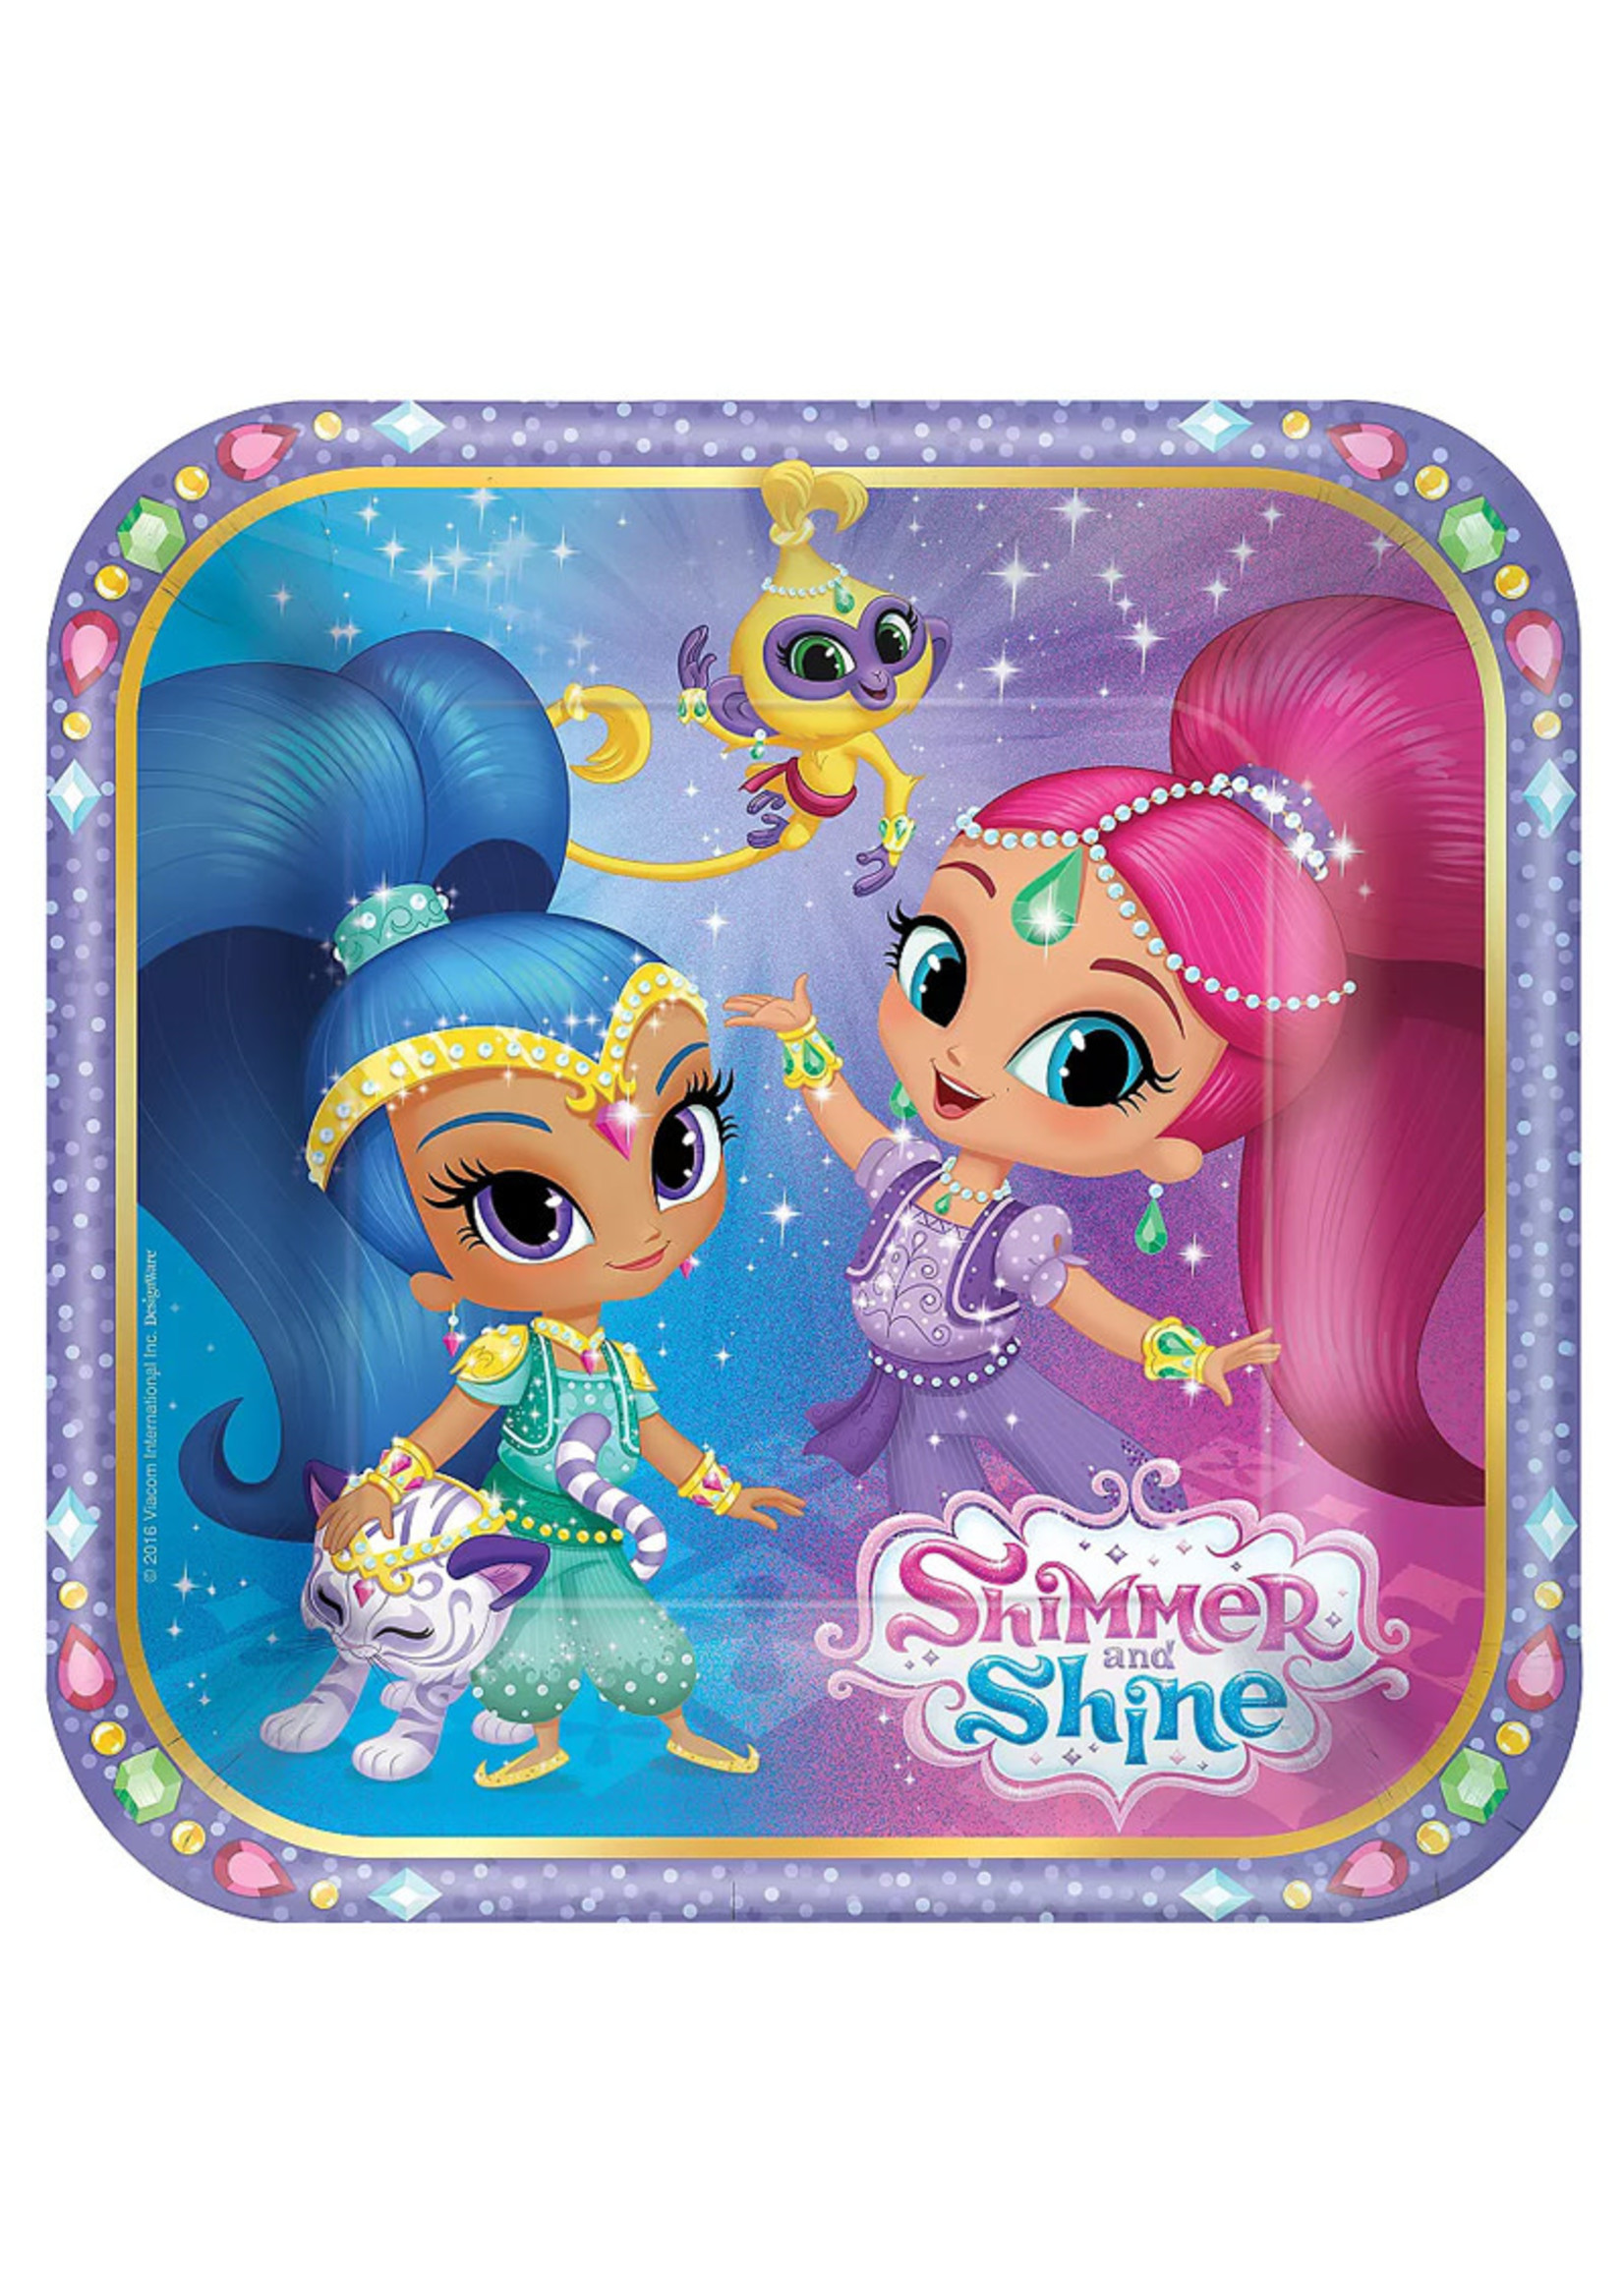 Shimmer and Shine Dessert Plates 8ct